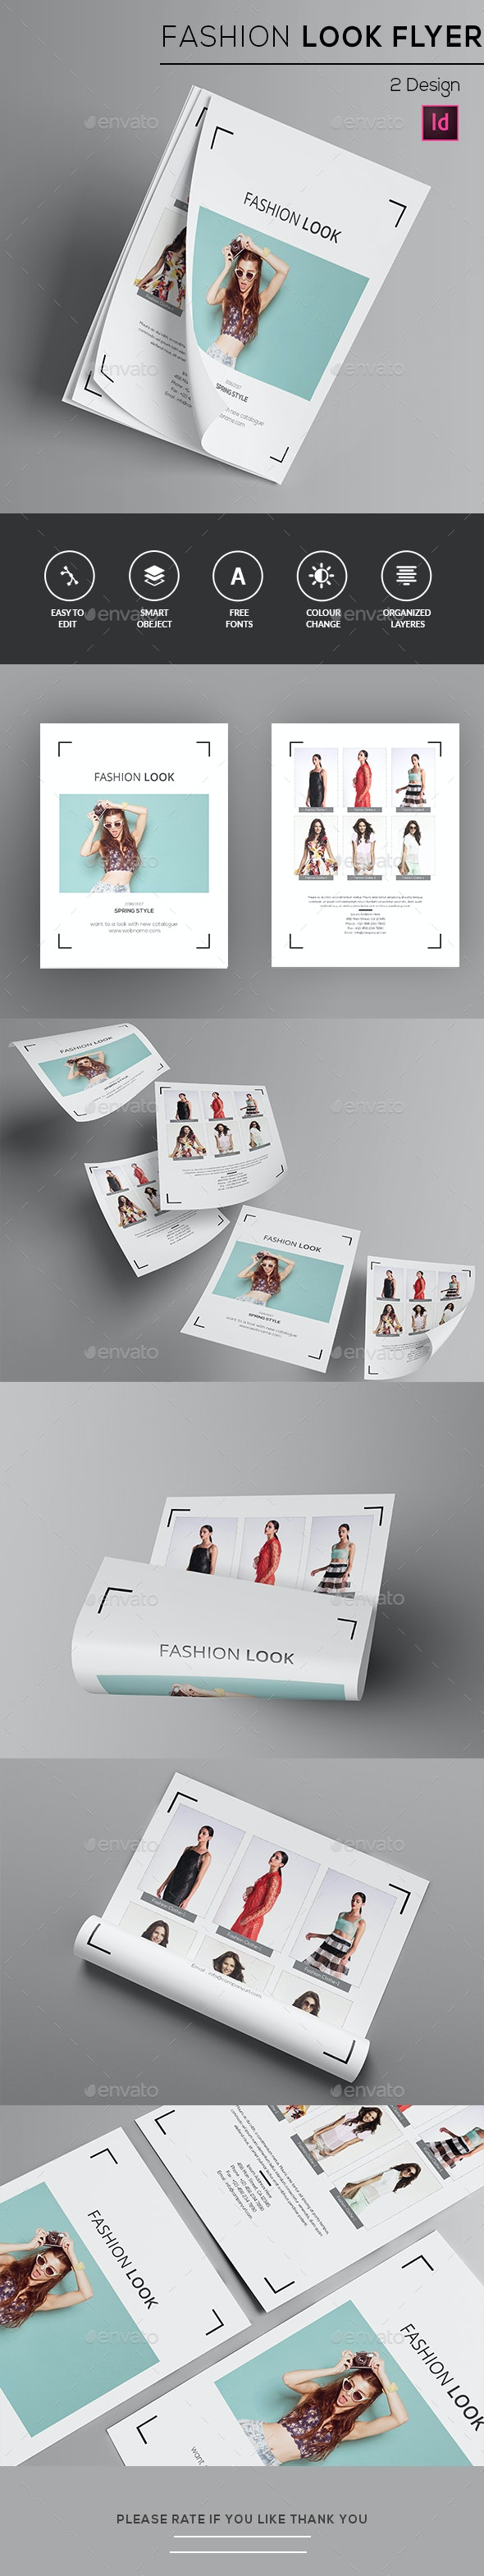 Fashion Look Flyer  - Commerce Flyers